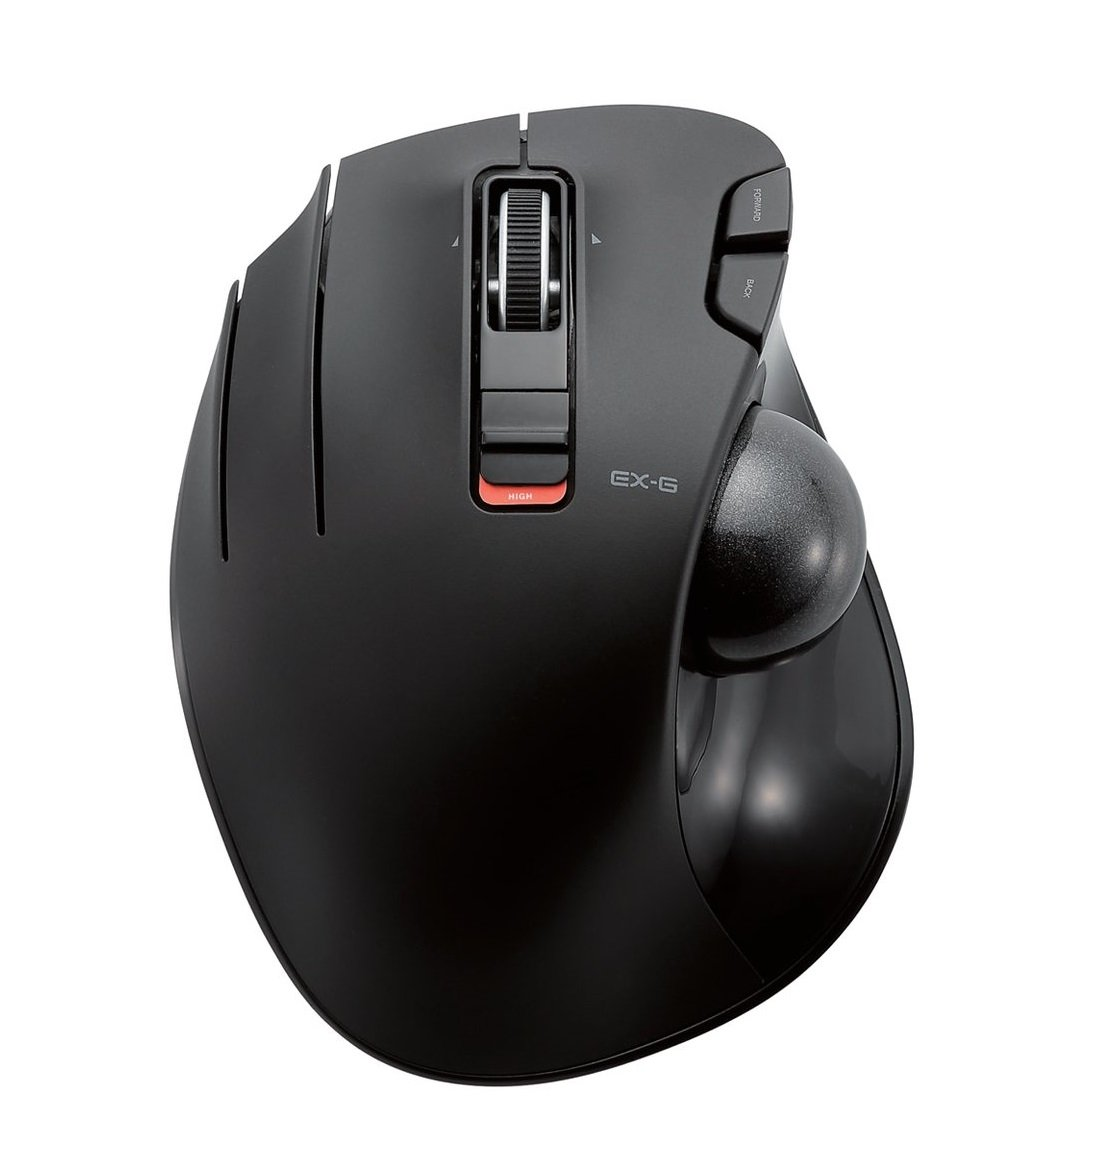 ELECOM M-XT4DRBK Wireless Trackball mouse for Left-Handed, EX-G series L size 2.4GHz 6 buttons Black by ELECOM